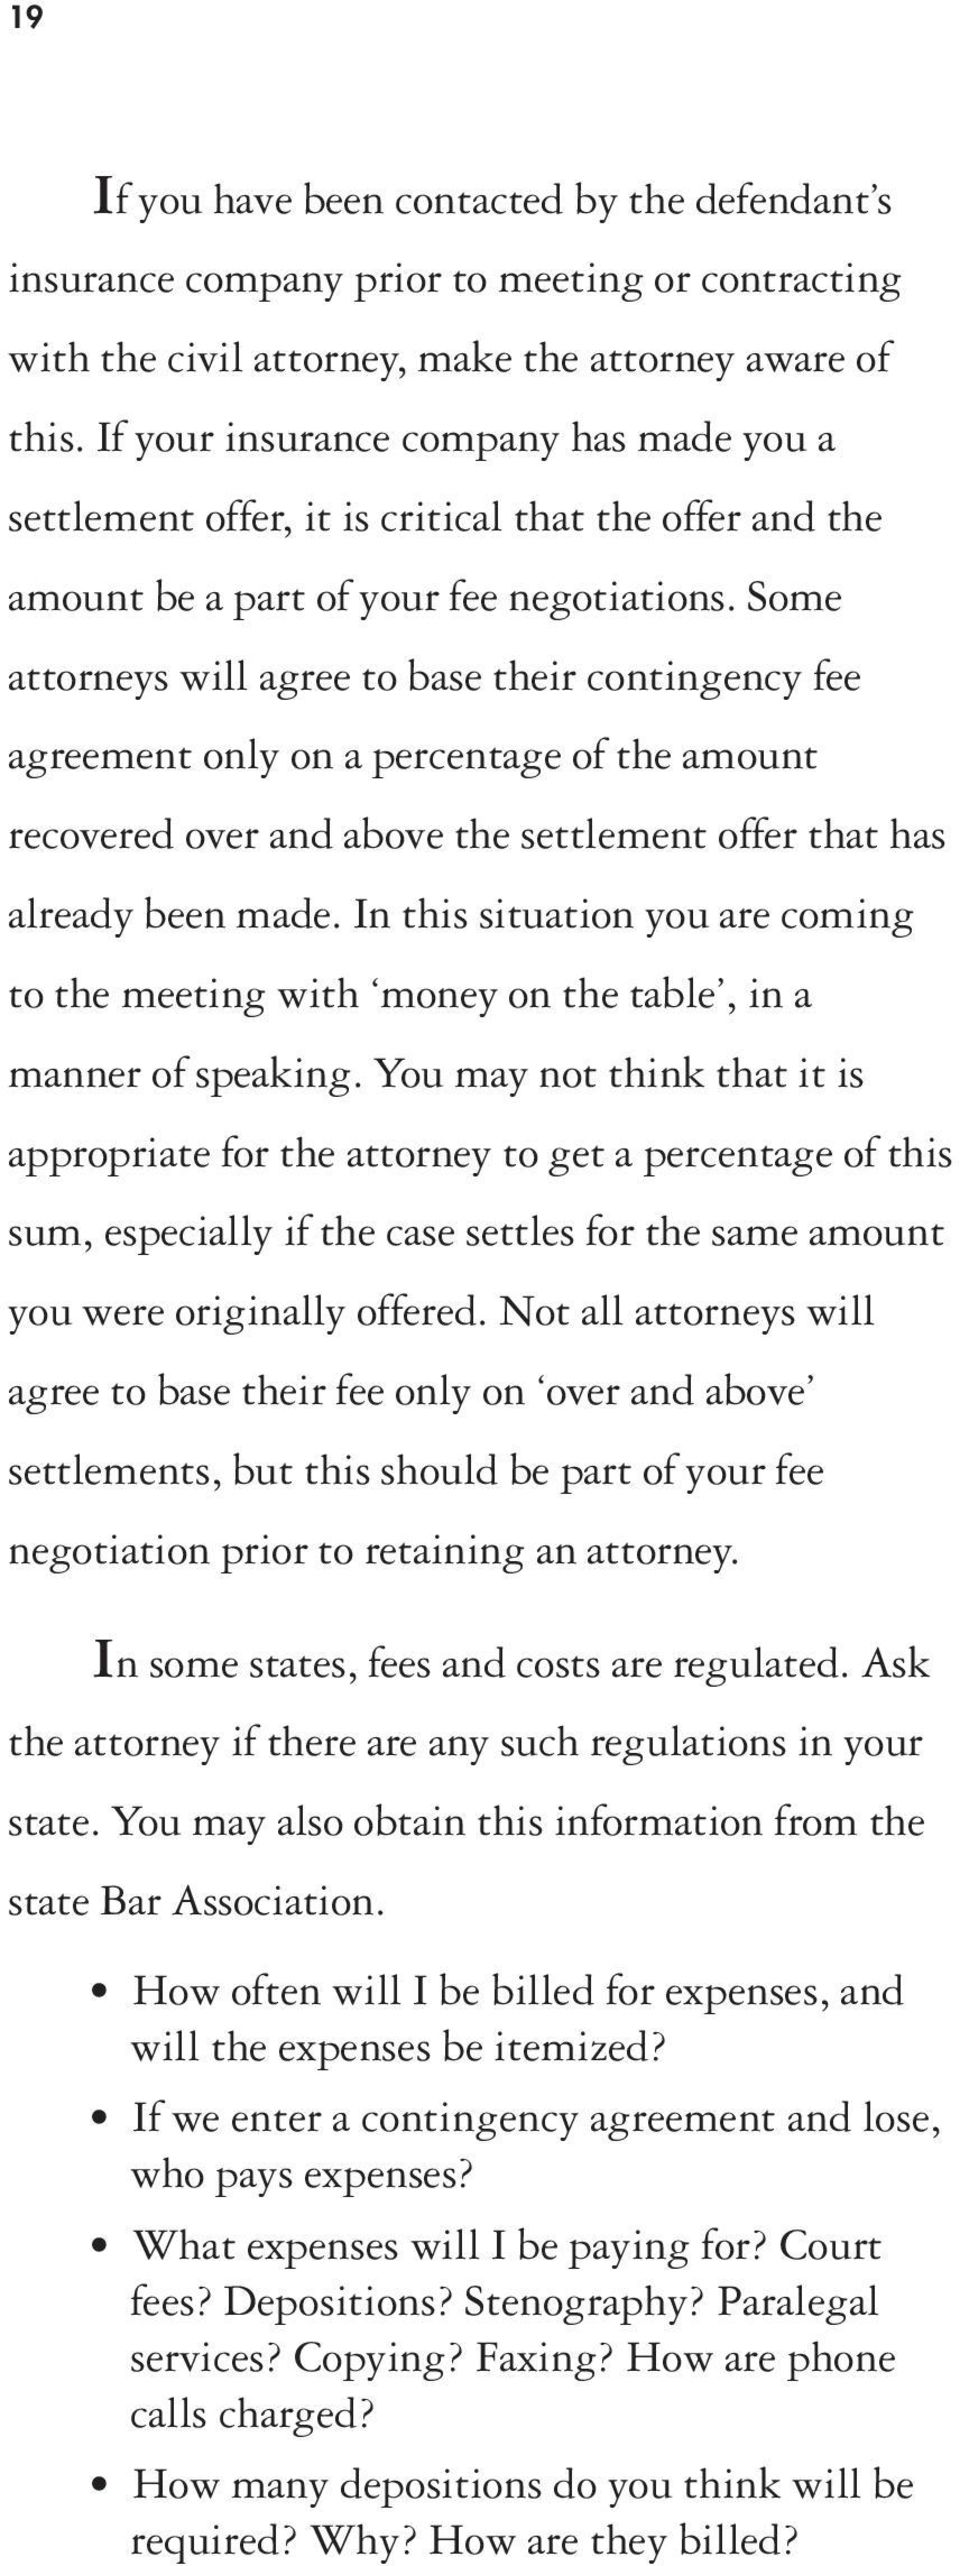 Some attorneys will agree to base their contingency fee agreement only on a percentage of the amount recovered over and above the settlement offer that has already been made.